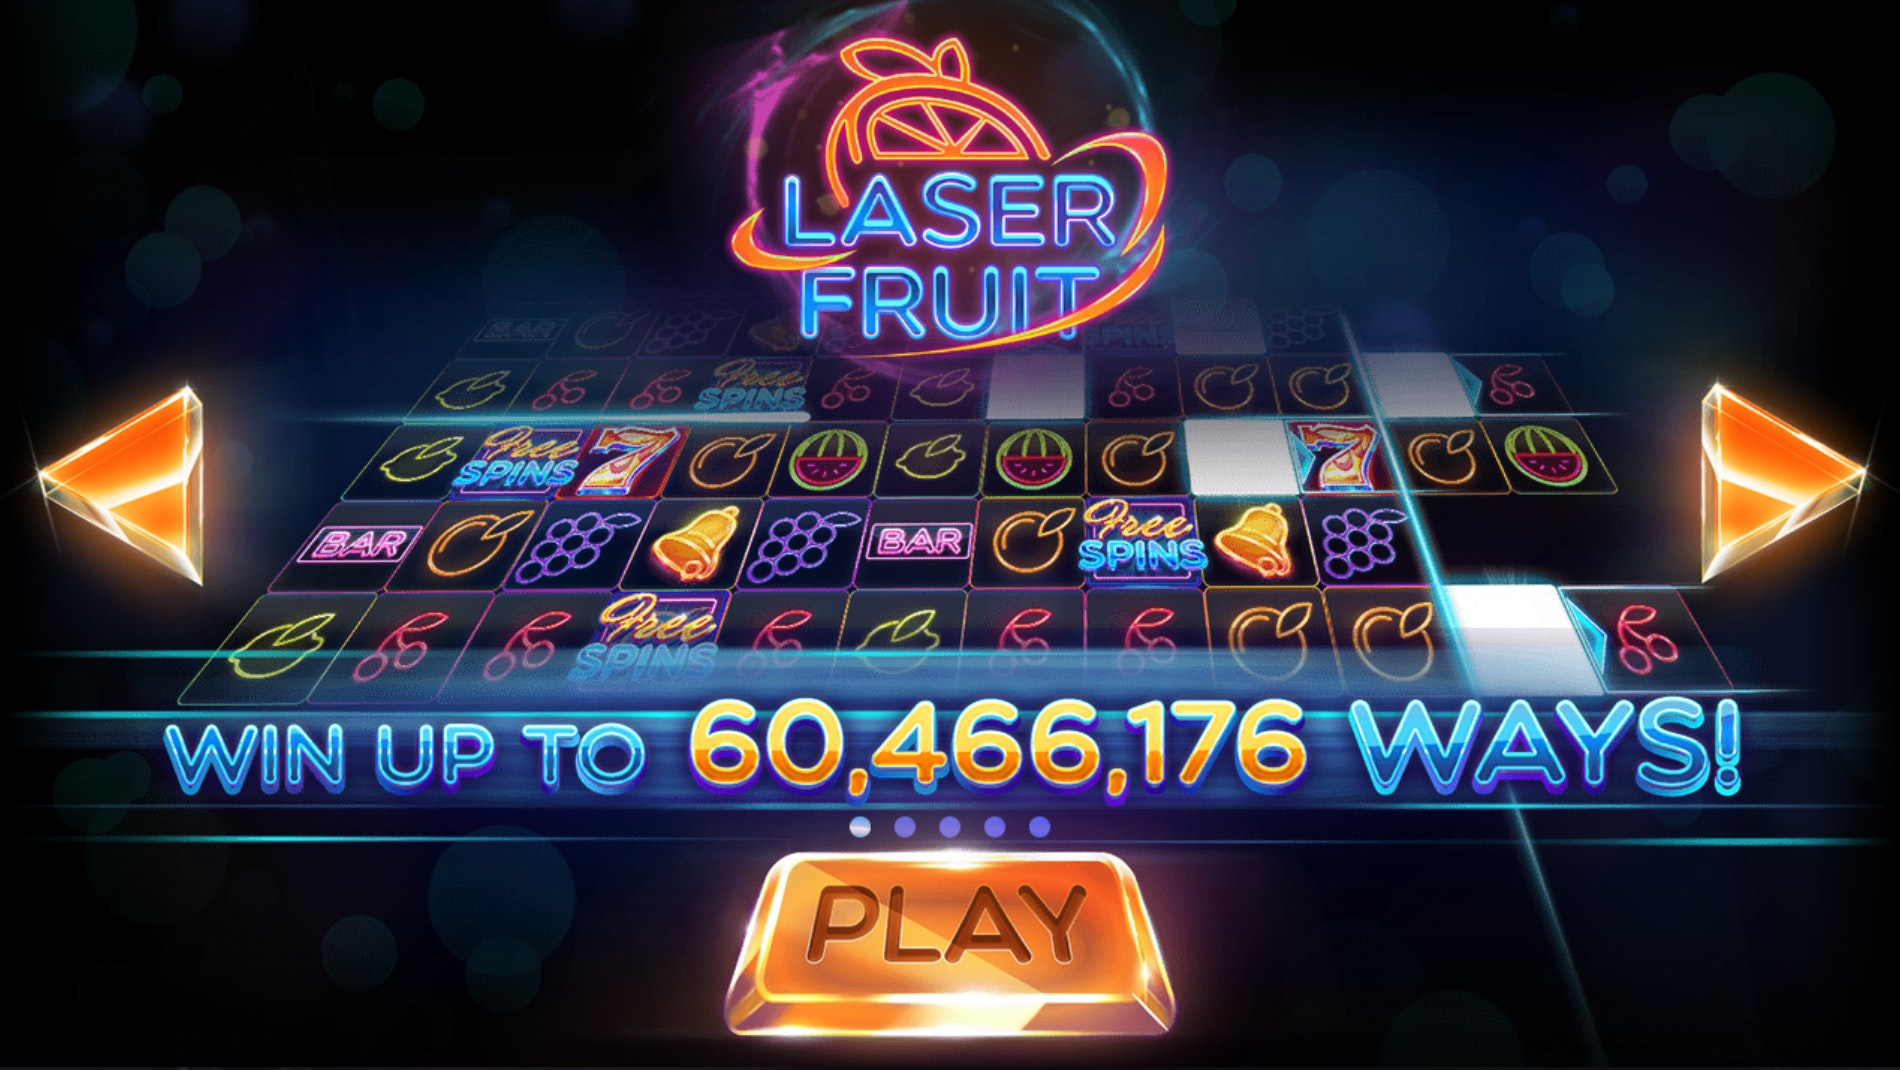 Get Fruity by Playing Laser Fruit